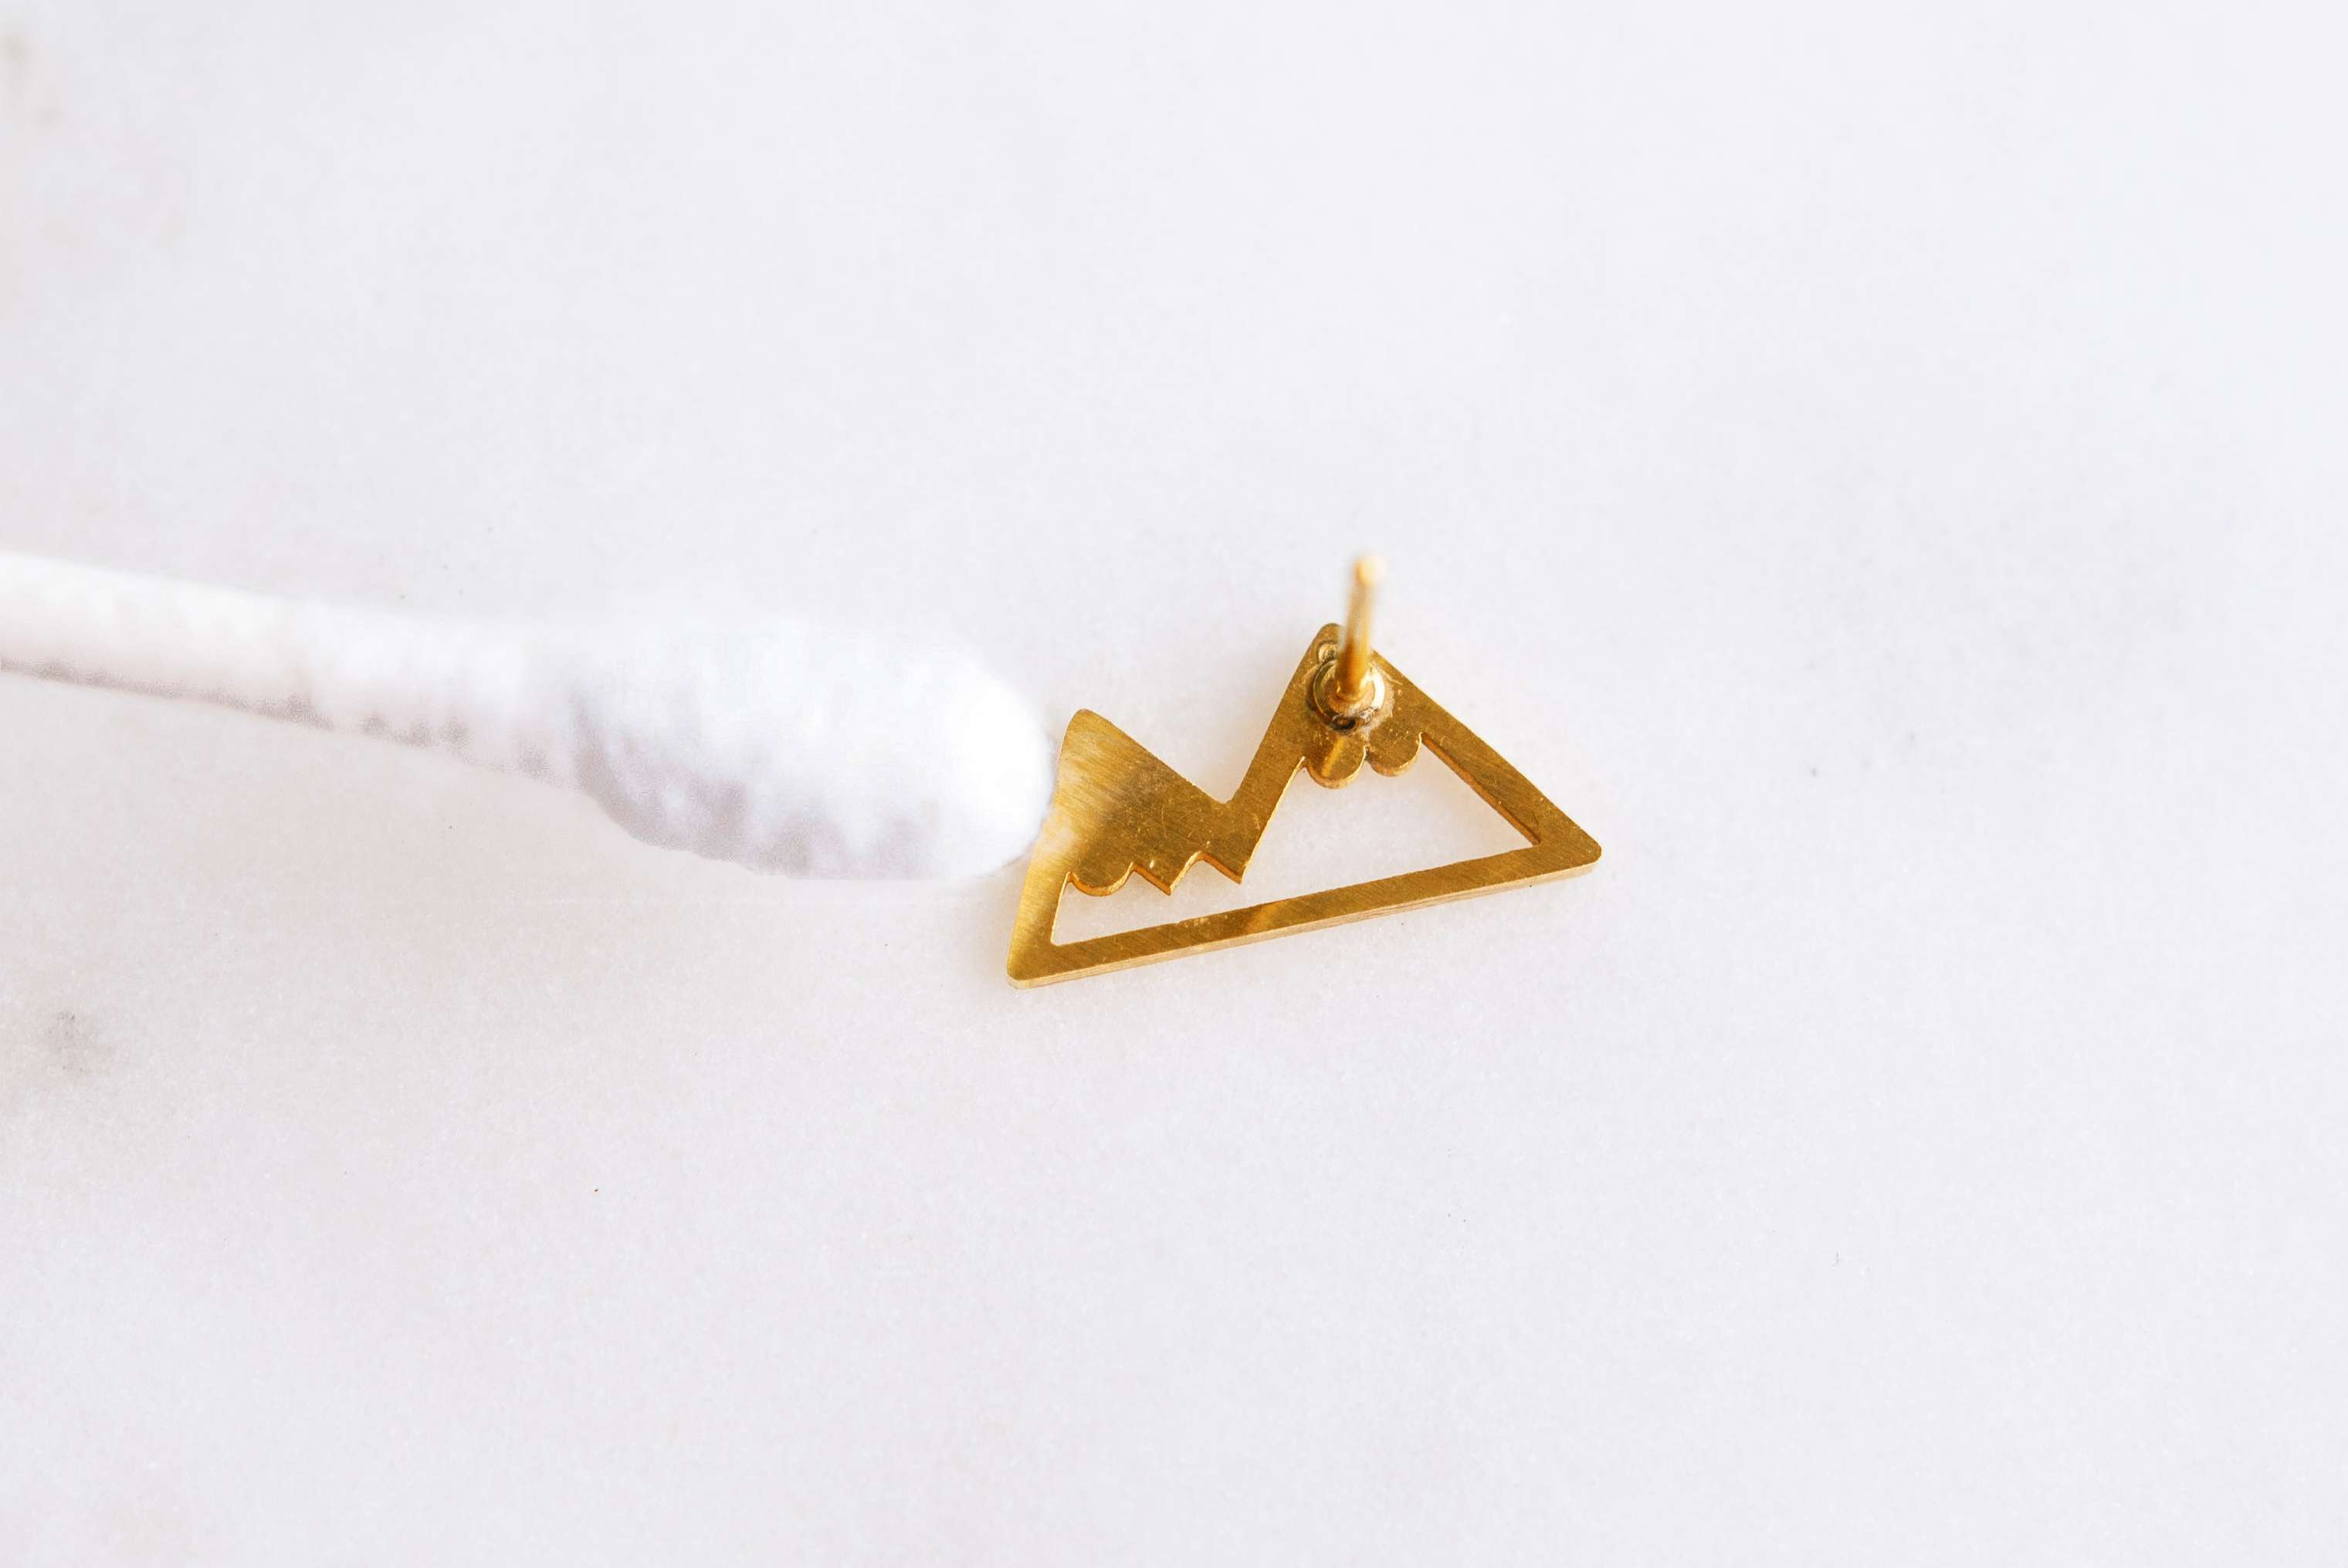 using a cotton swab to clean gold jewelry